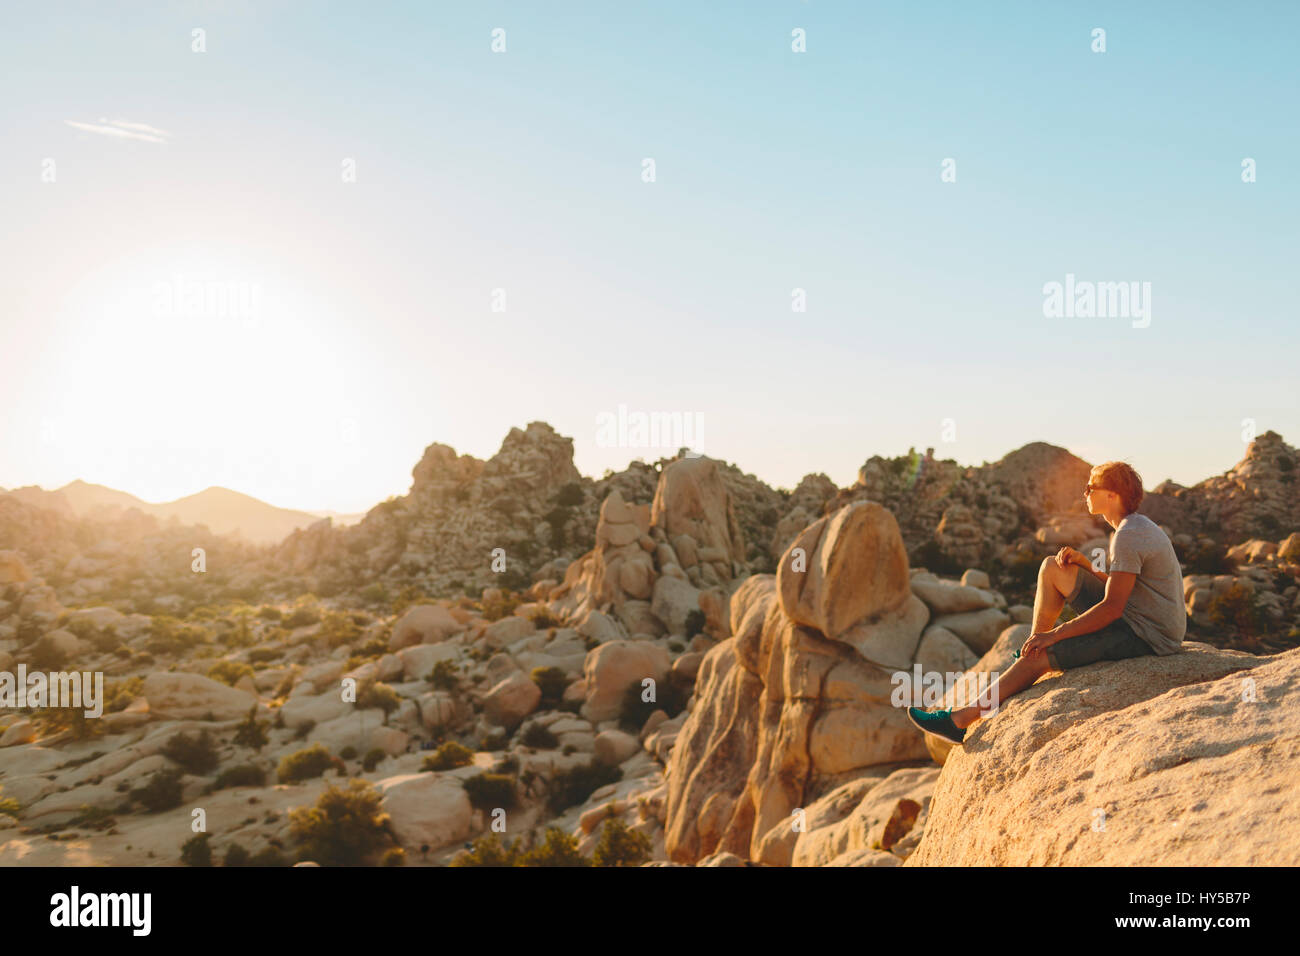 USA, California, Joshua Tree National Park, Man sitting on rock and looking at rocks - Stock Image